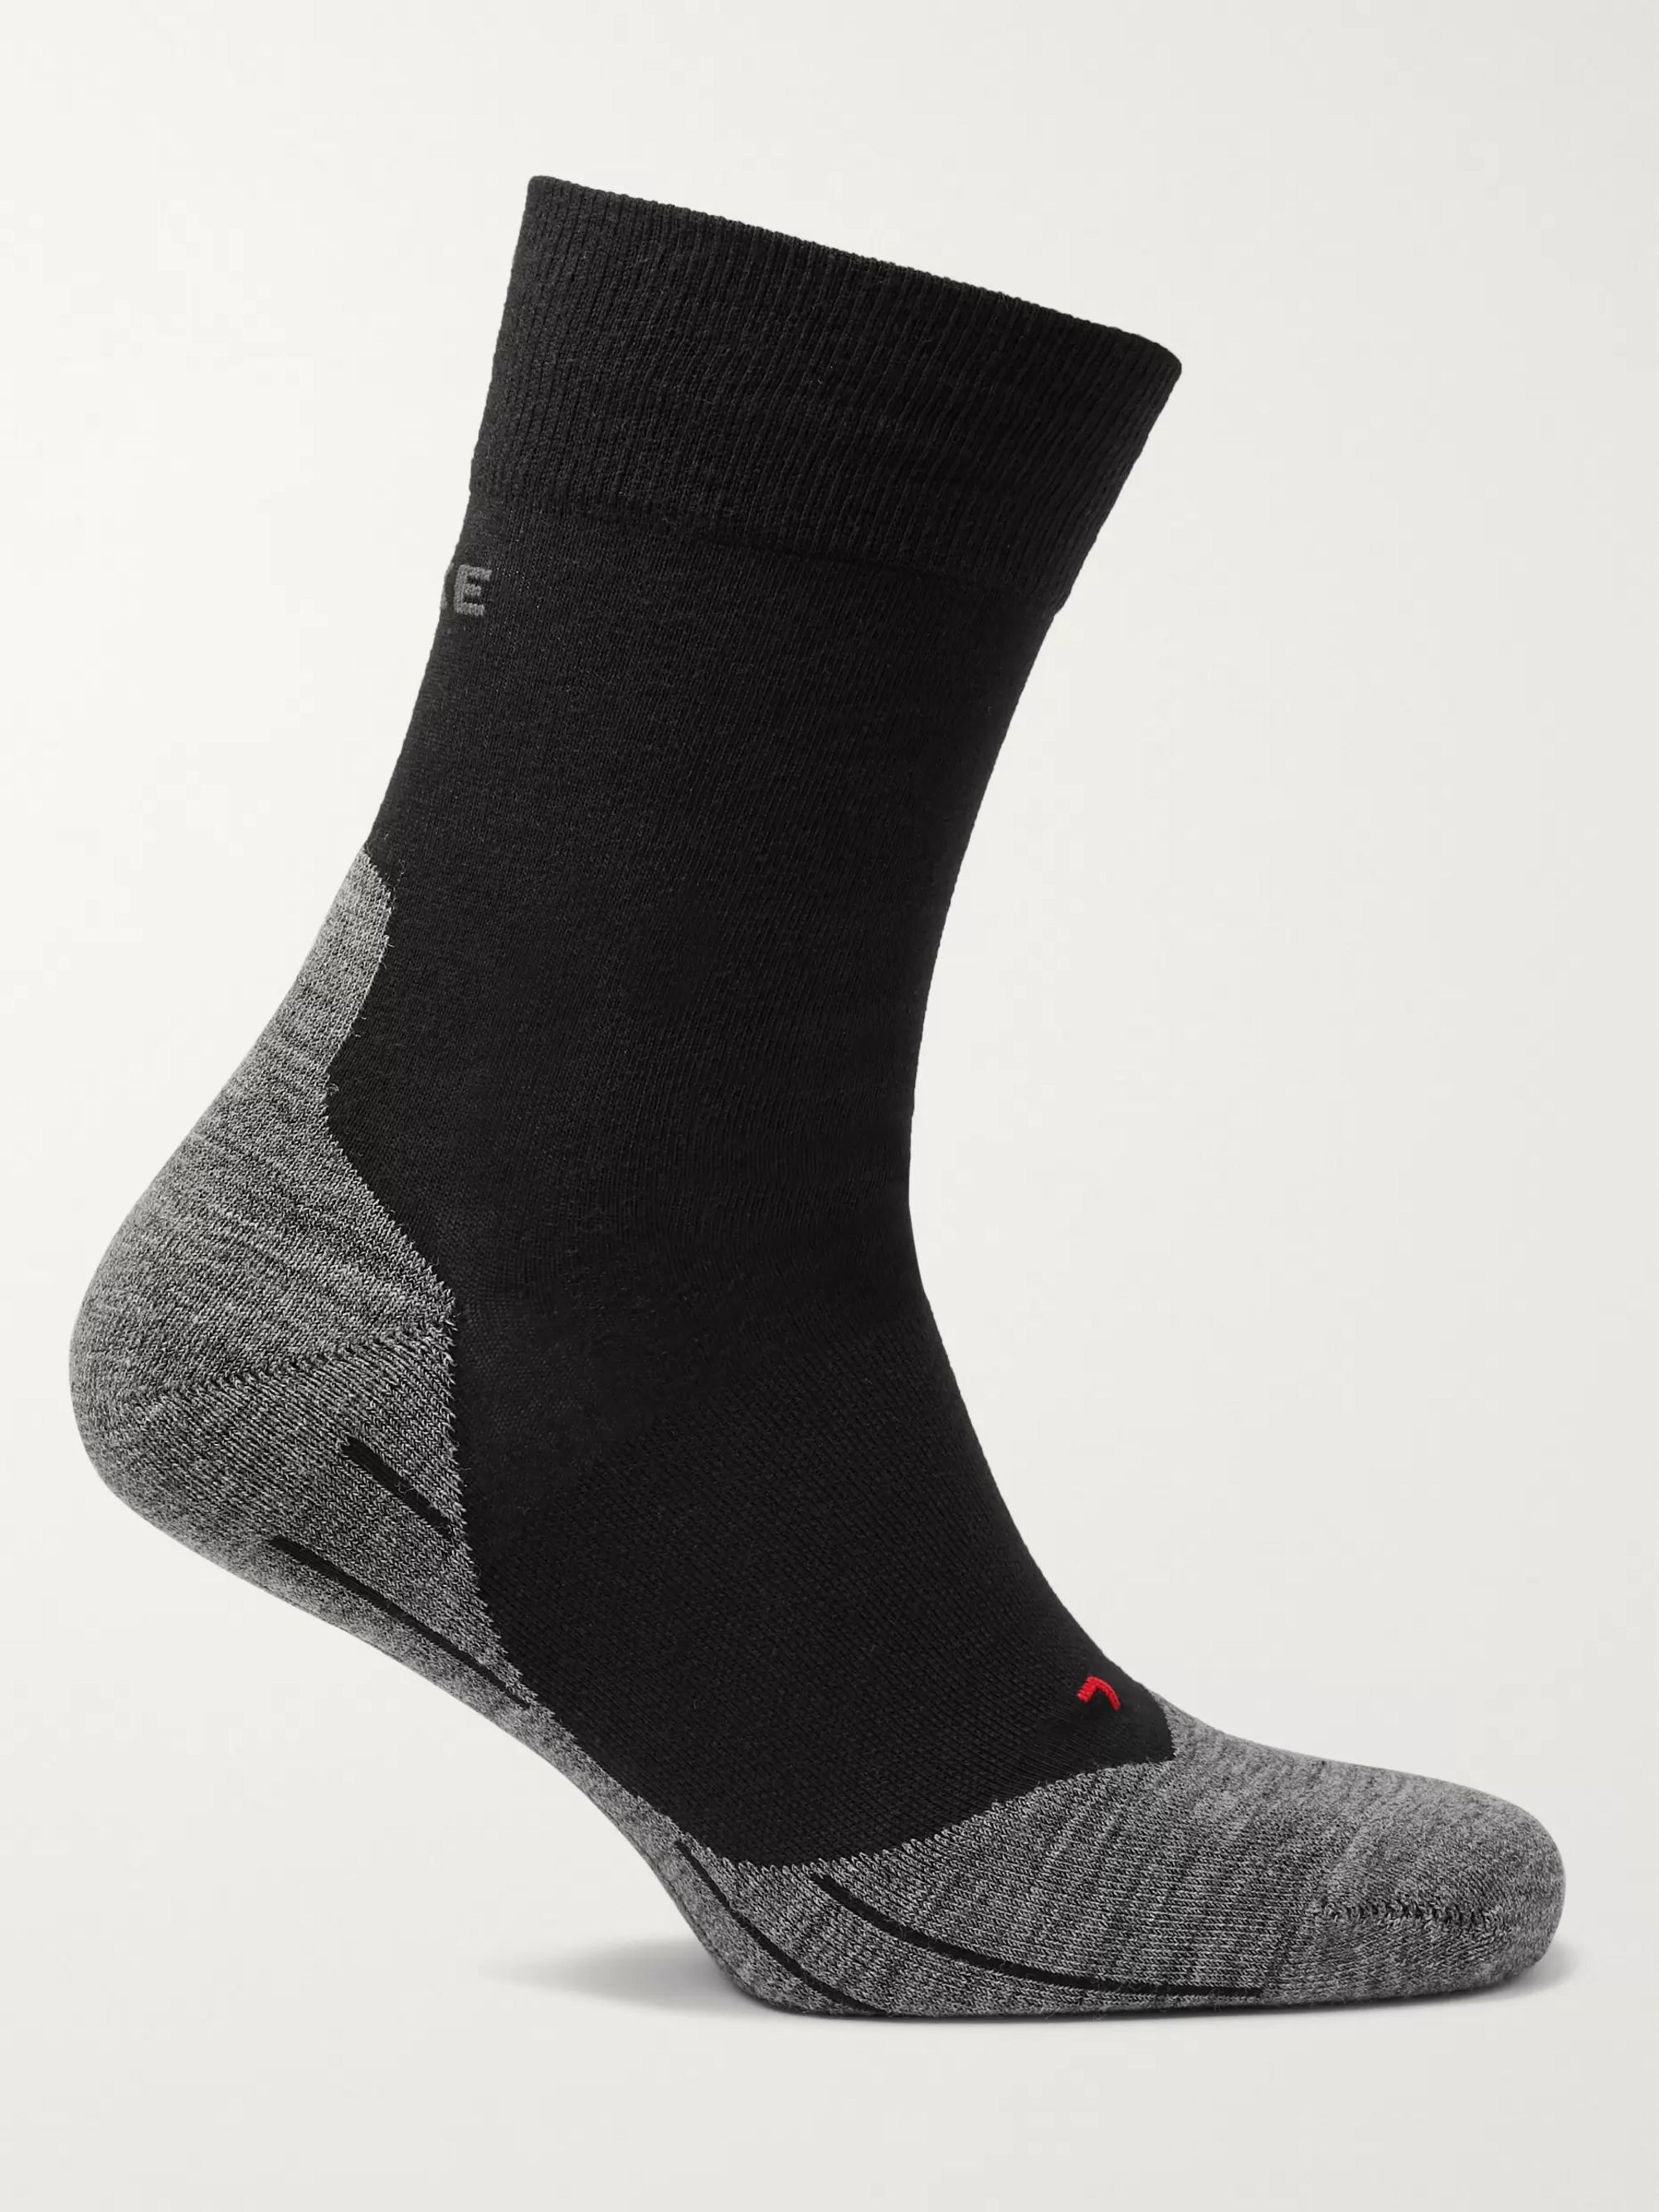 FALKE Ergonomic Sport System RU4 Stretch-Knit Socks